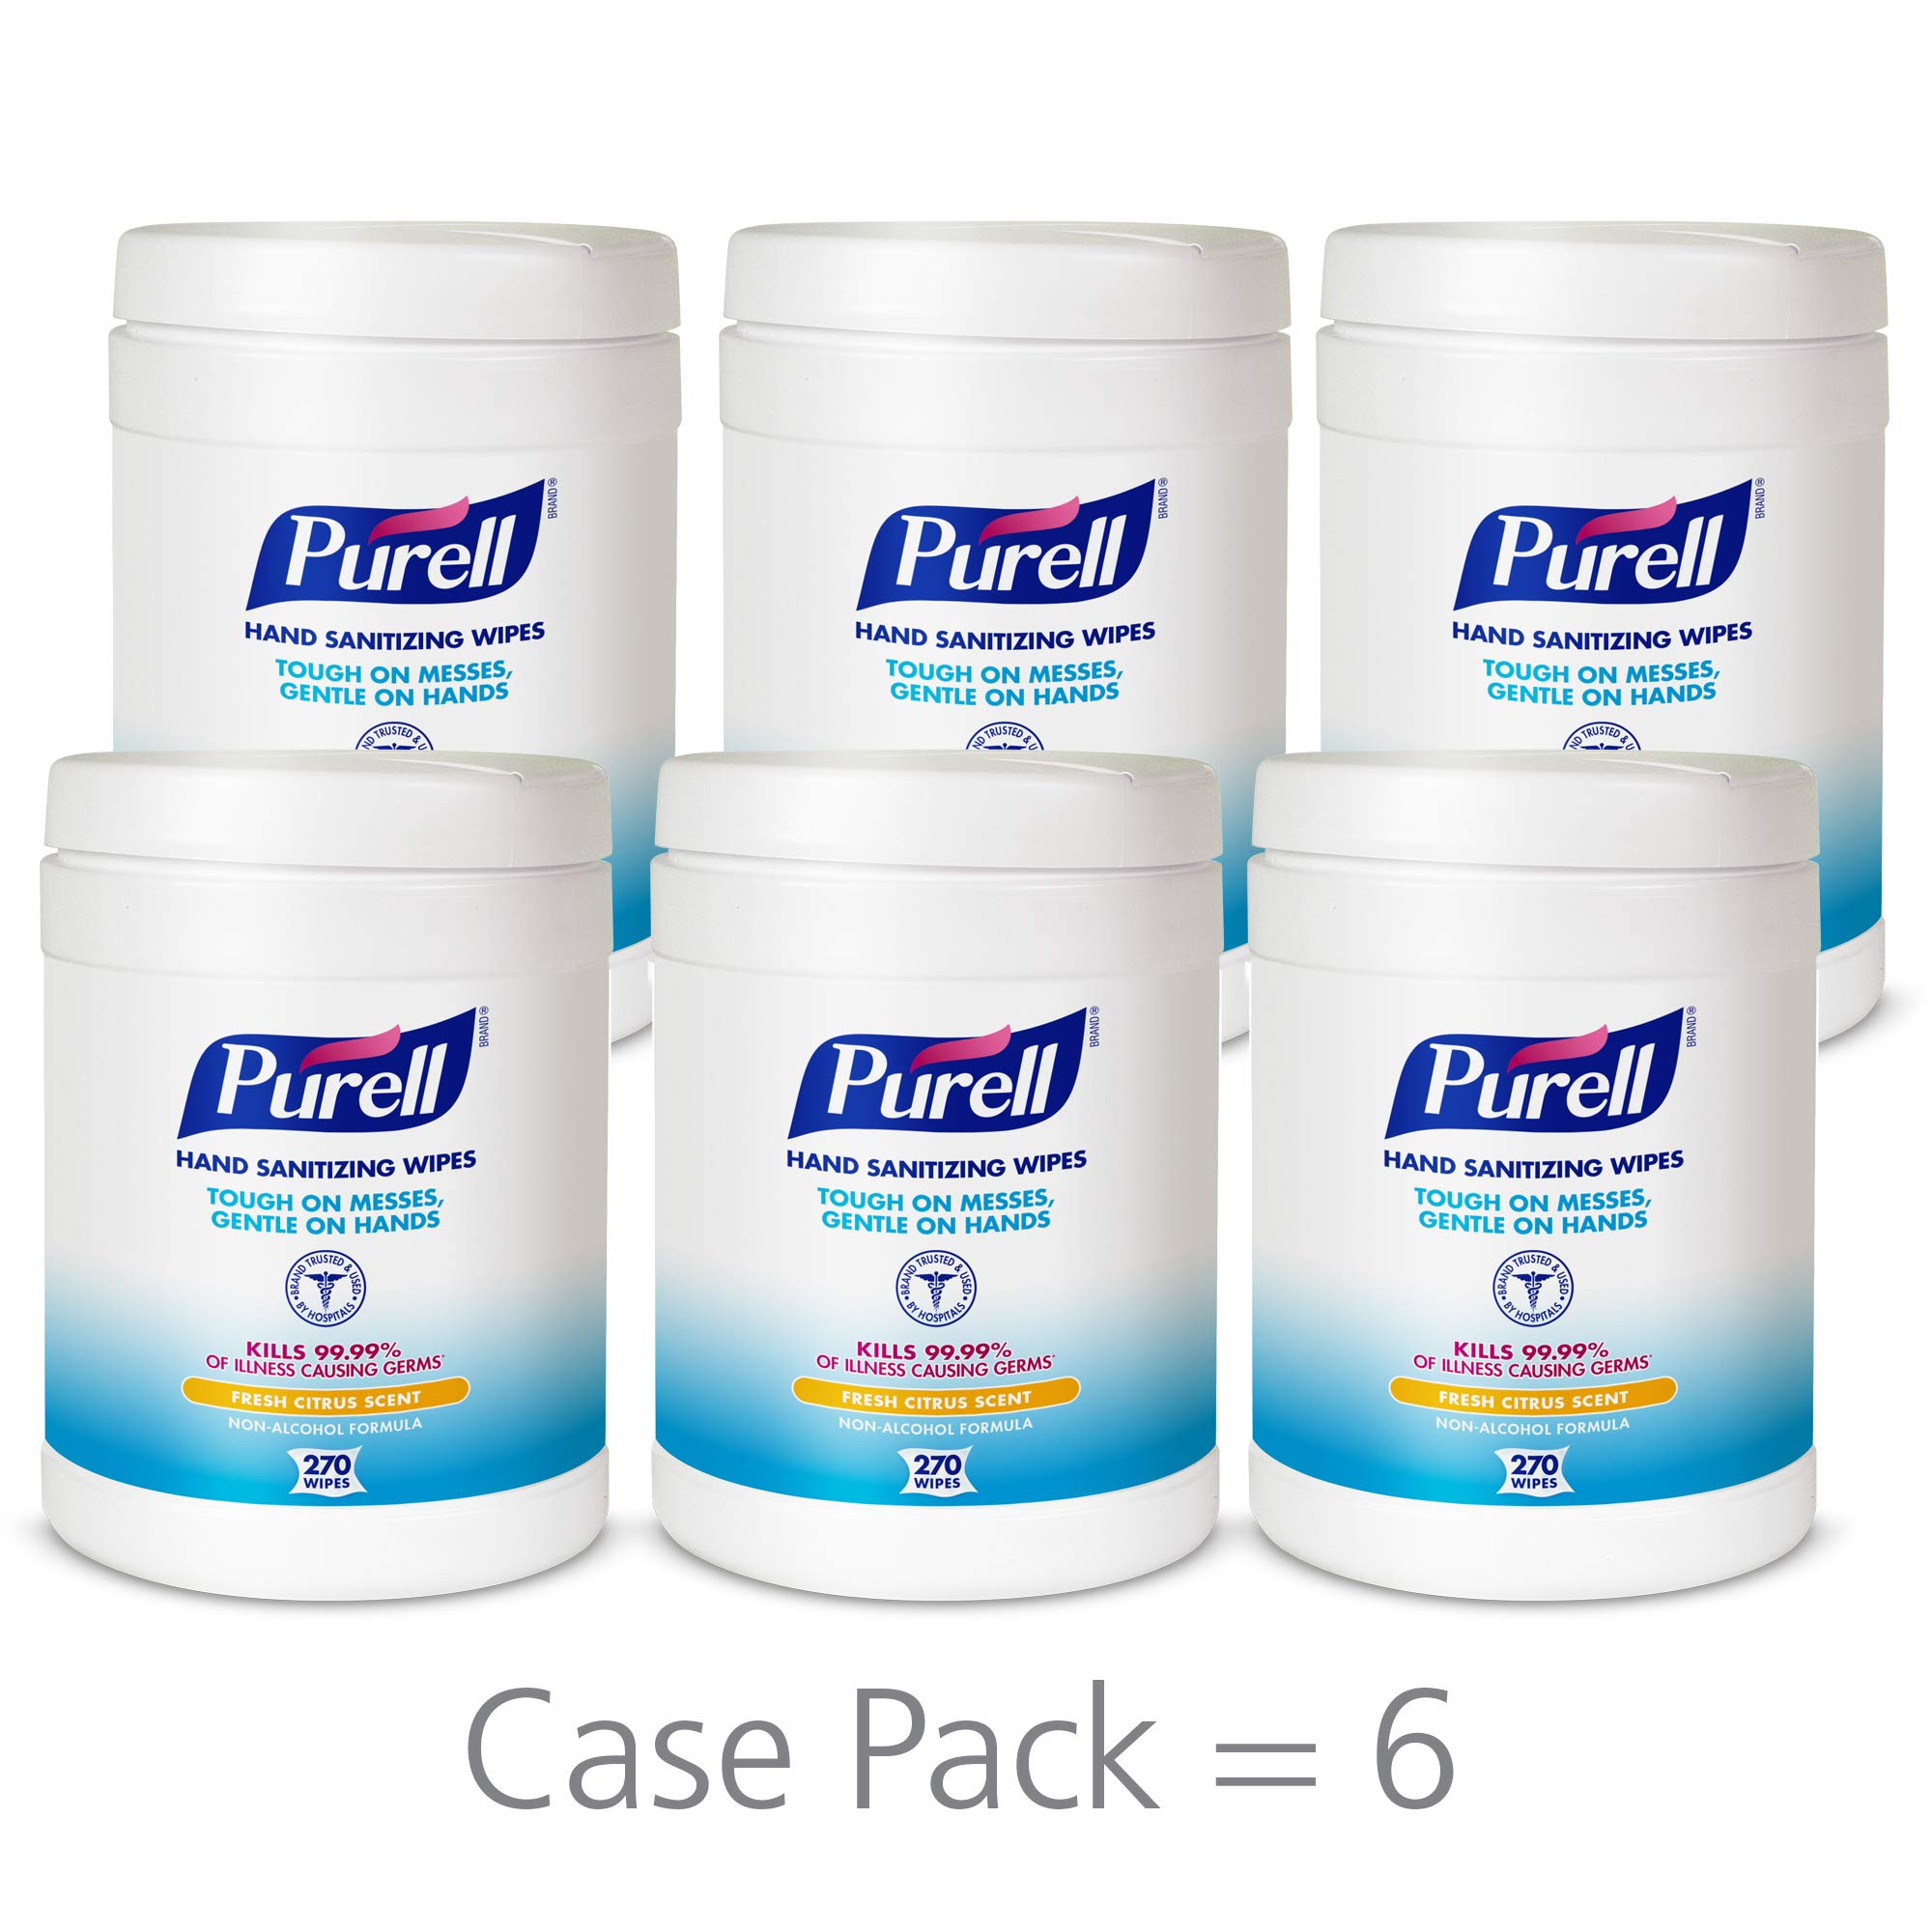 PURELL Hand Sanitizing Wipes, Fresh Citrus Scent, 270 Count Alcohol-free formula Sanitizing Wipes in Eco-Fit Canister (Case of 6) - 9113-06 by Purell